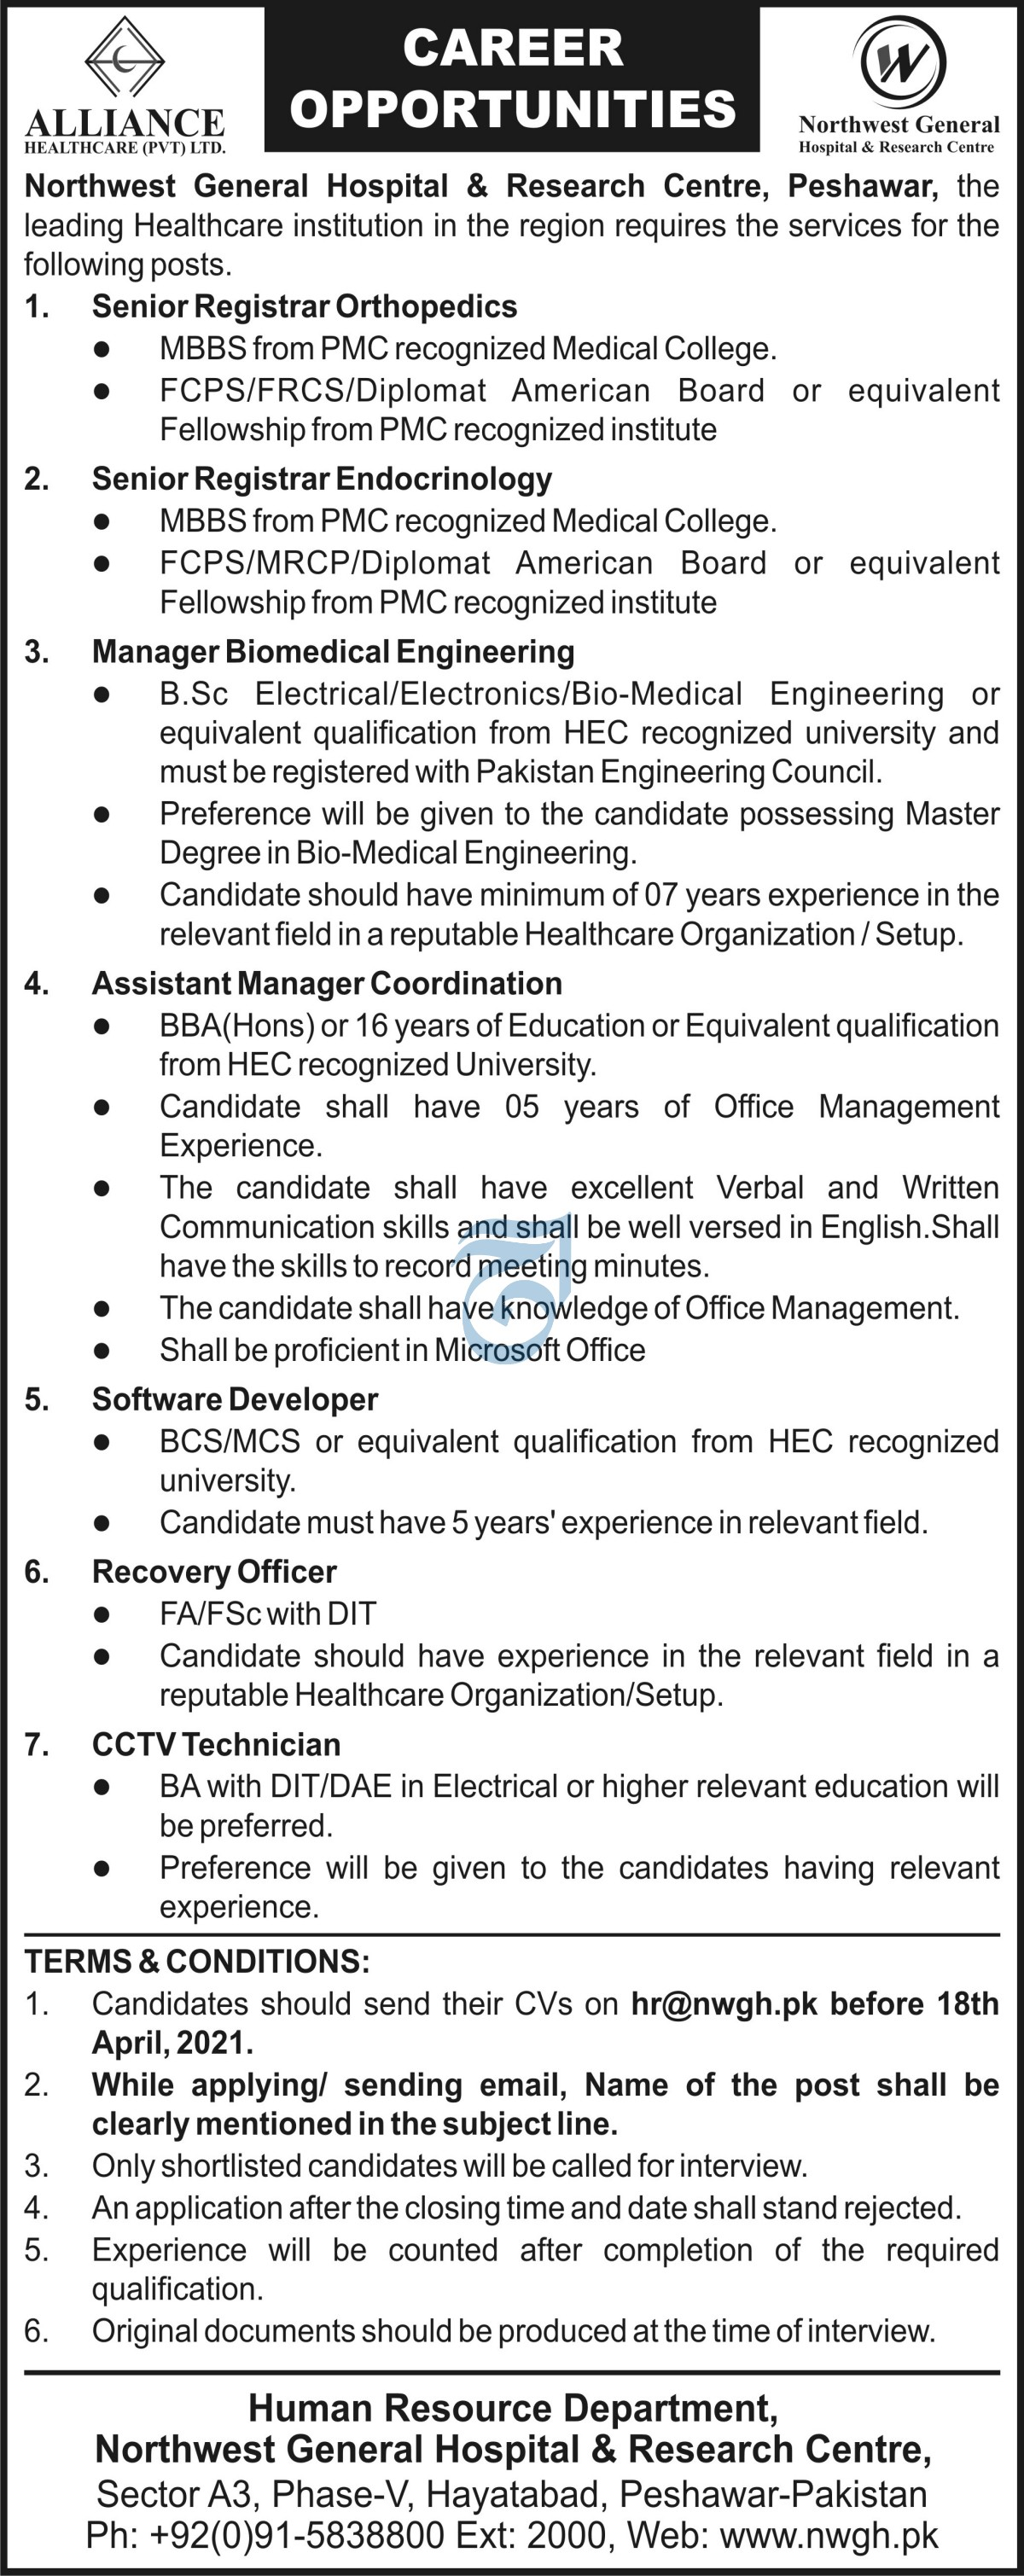 Alliance Healthcare Private Limited Jobs 2021